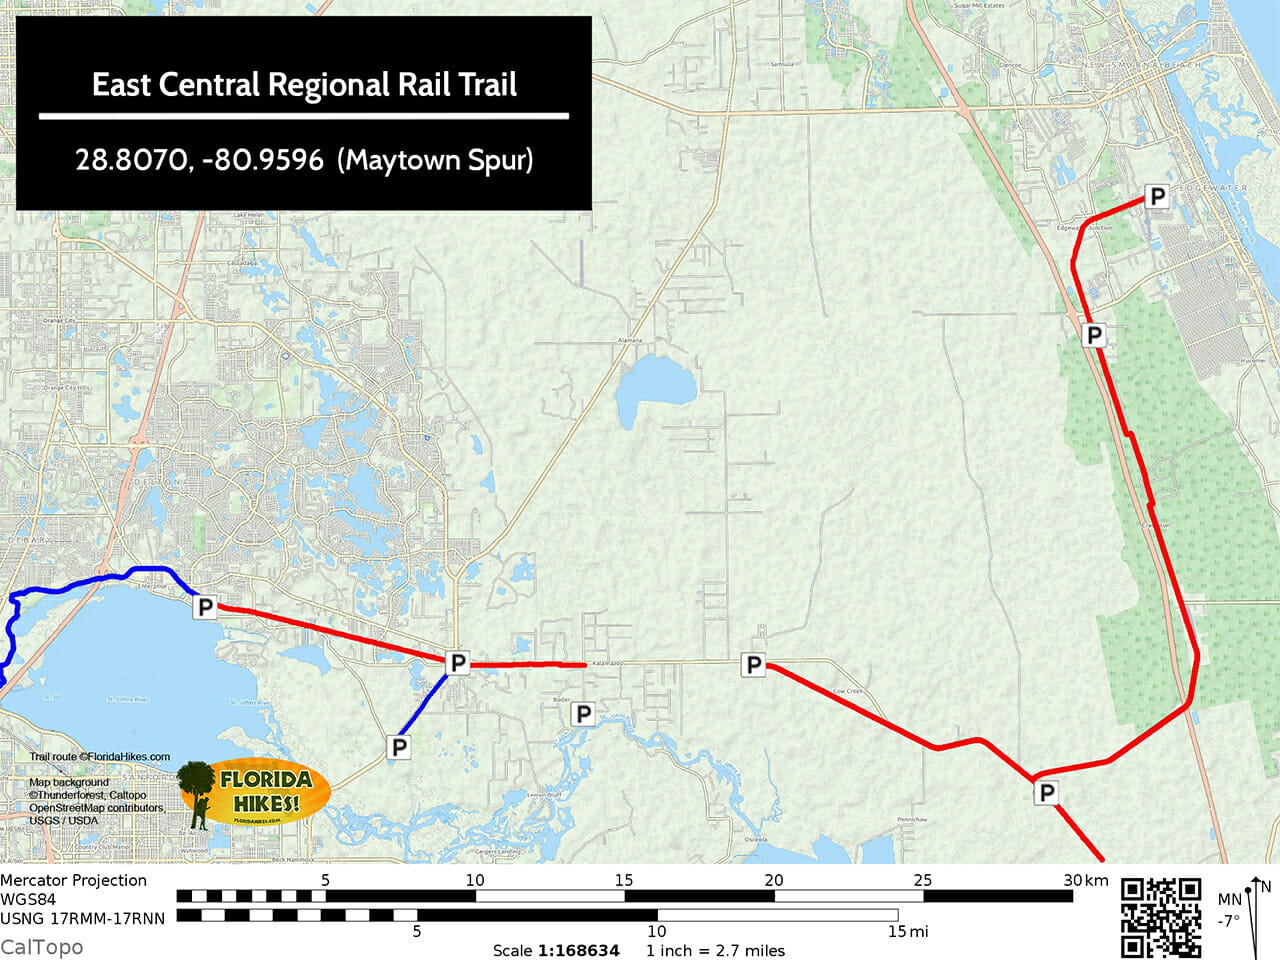 East Central Regional Rail Trail map